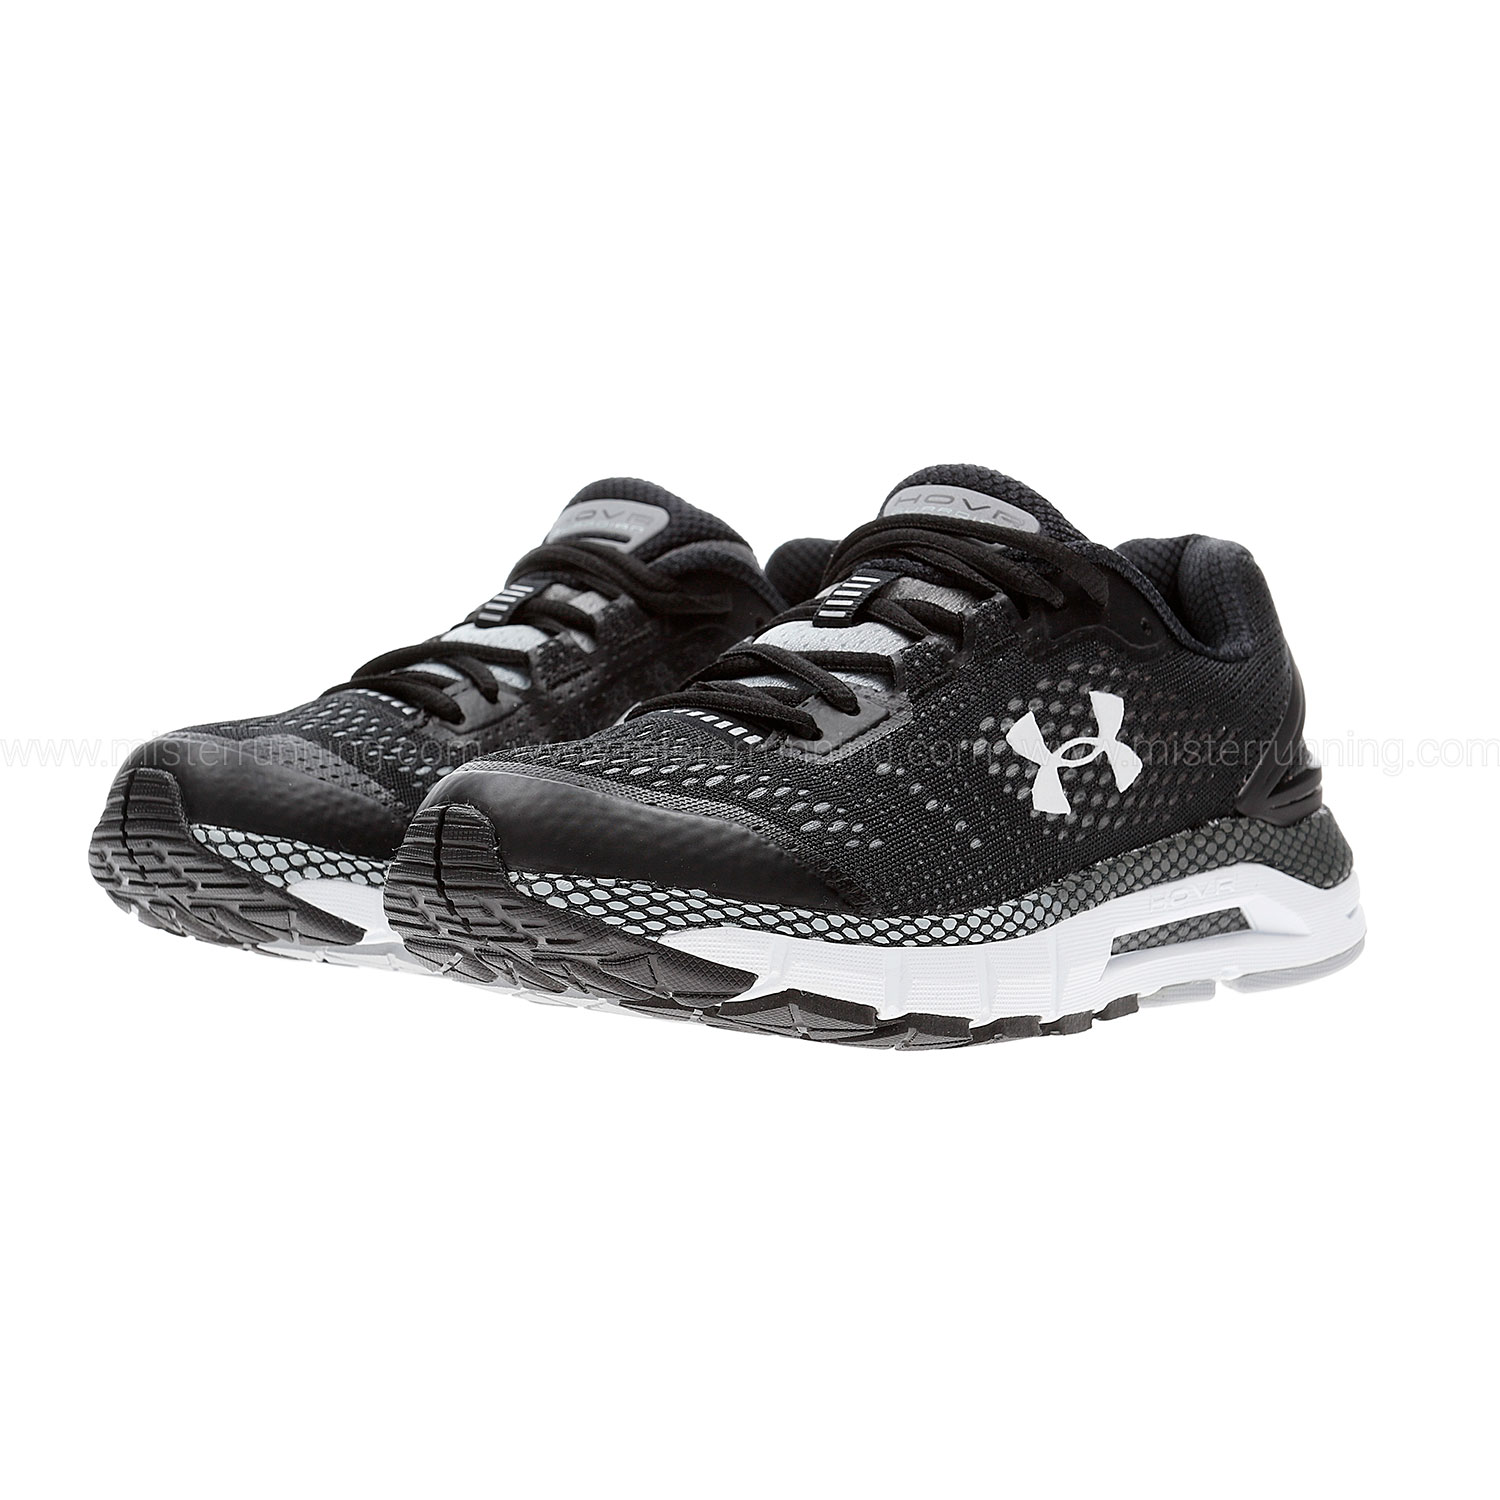 Under Armour Hovr Guardian - Black/Mod Gray